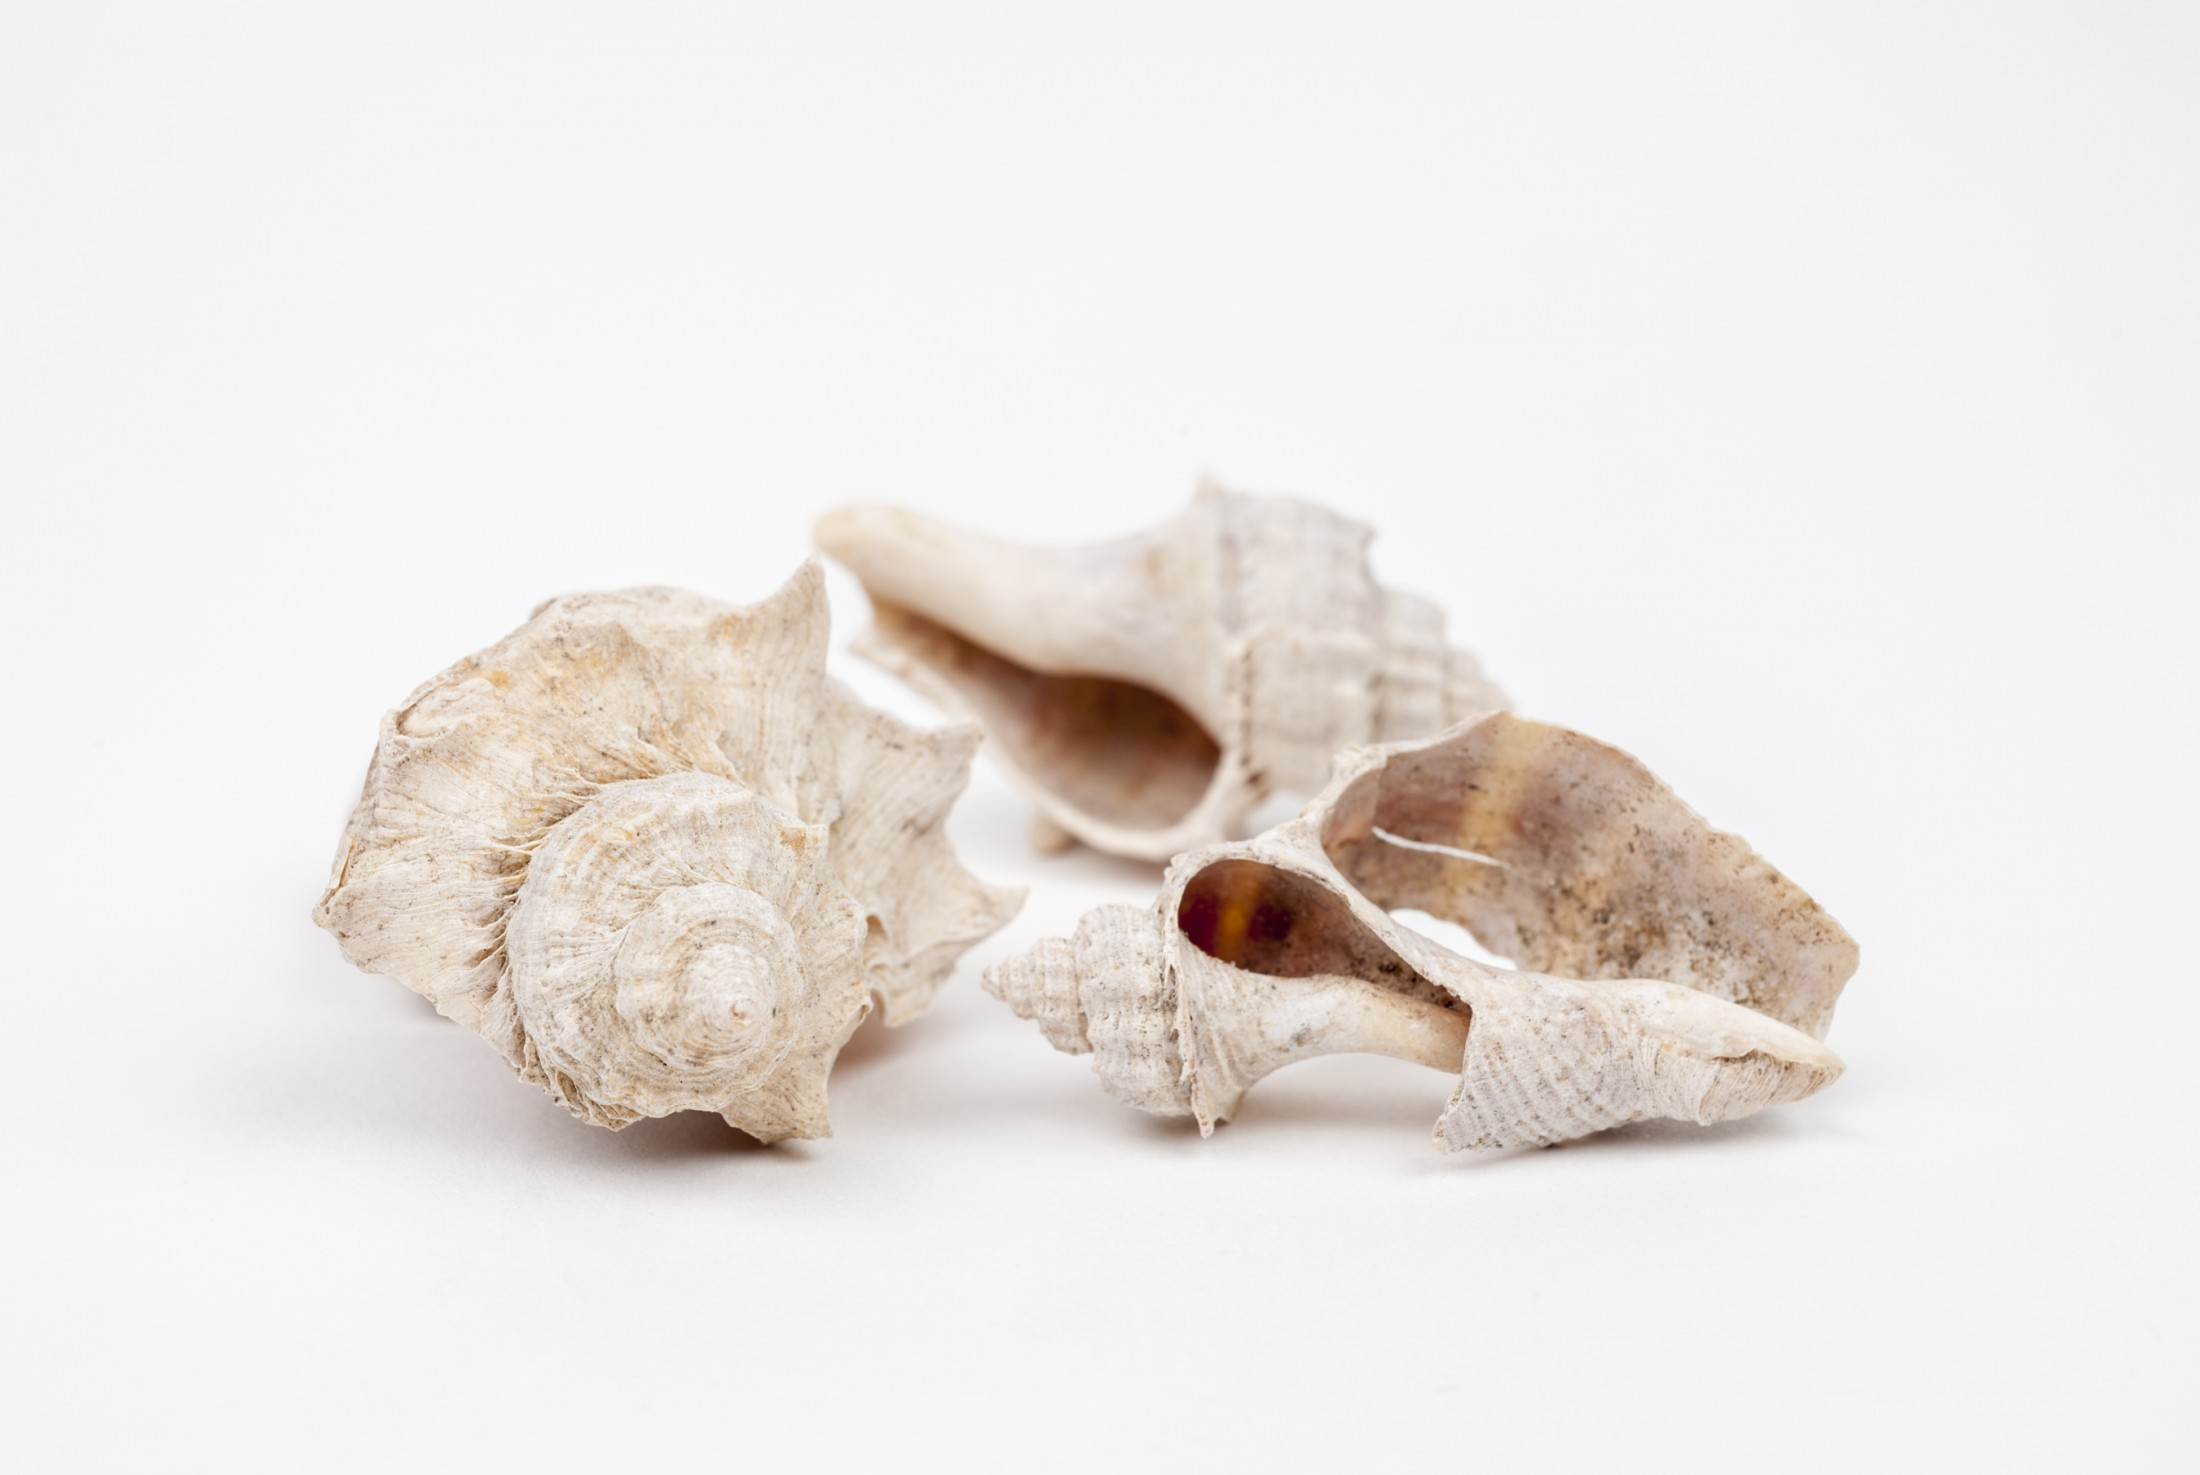 White shells from the environmental archaeology collection